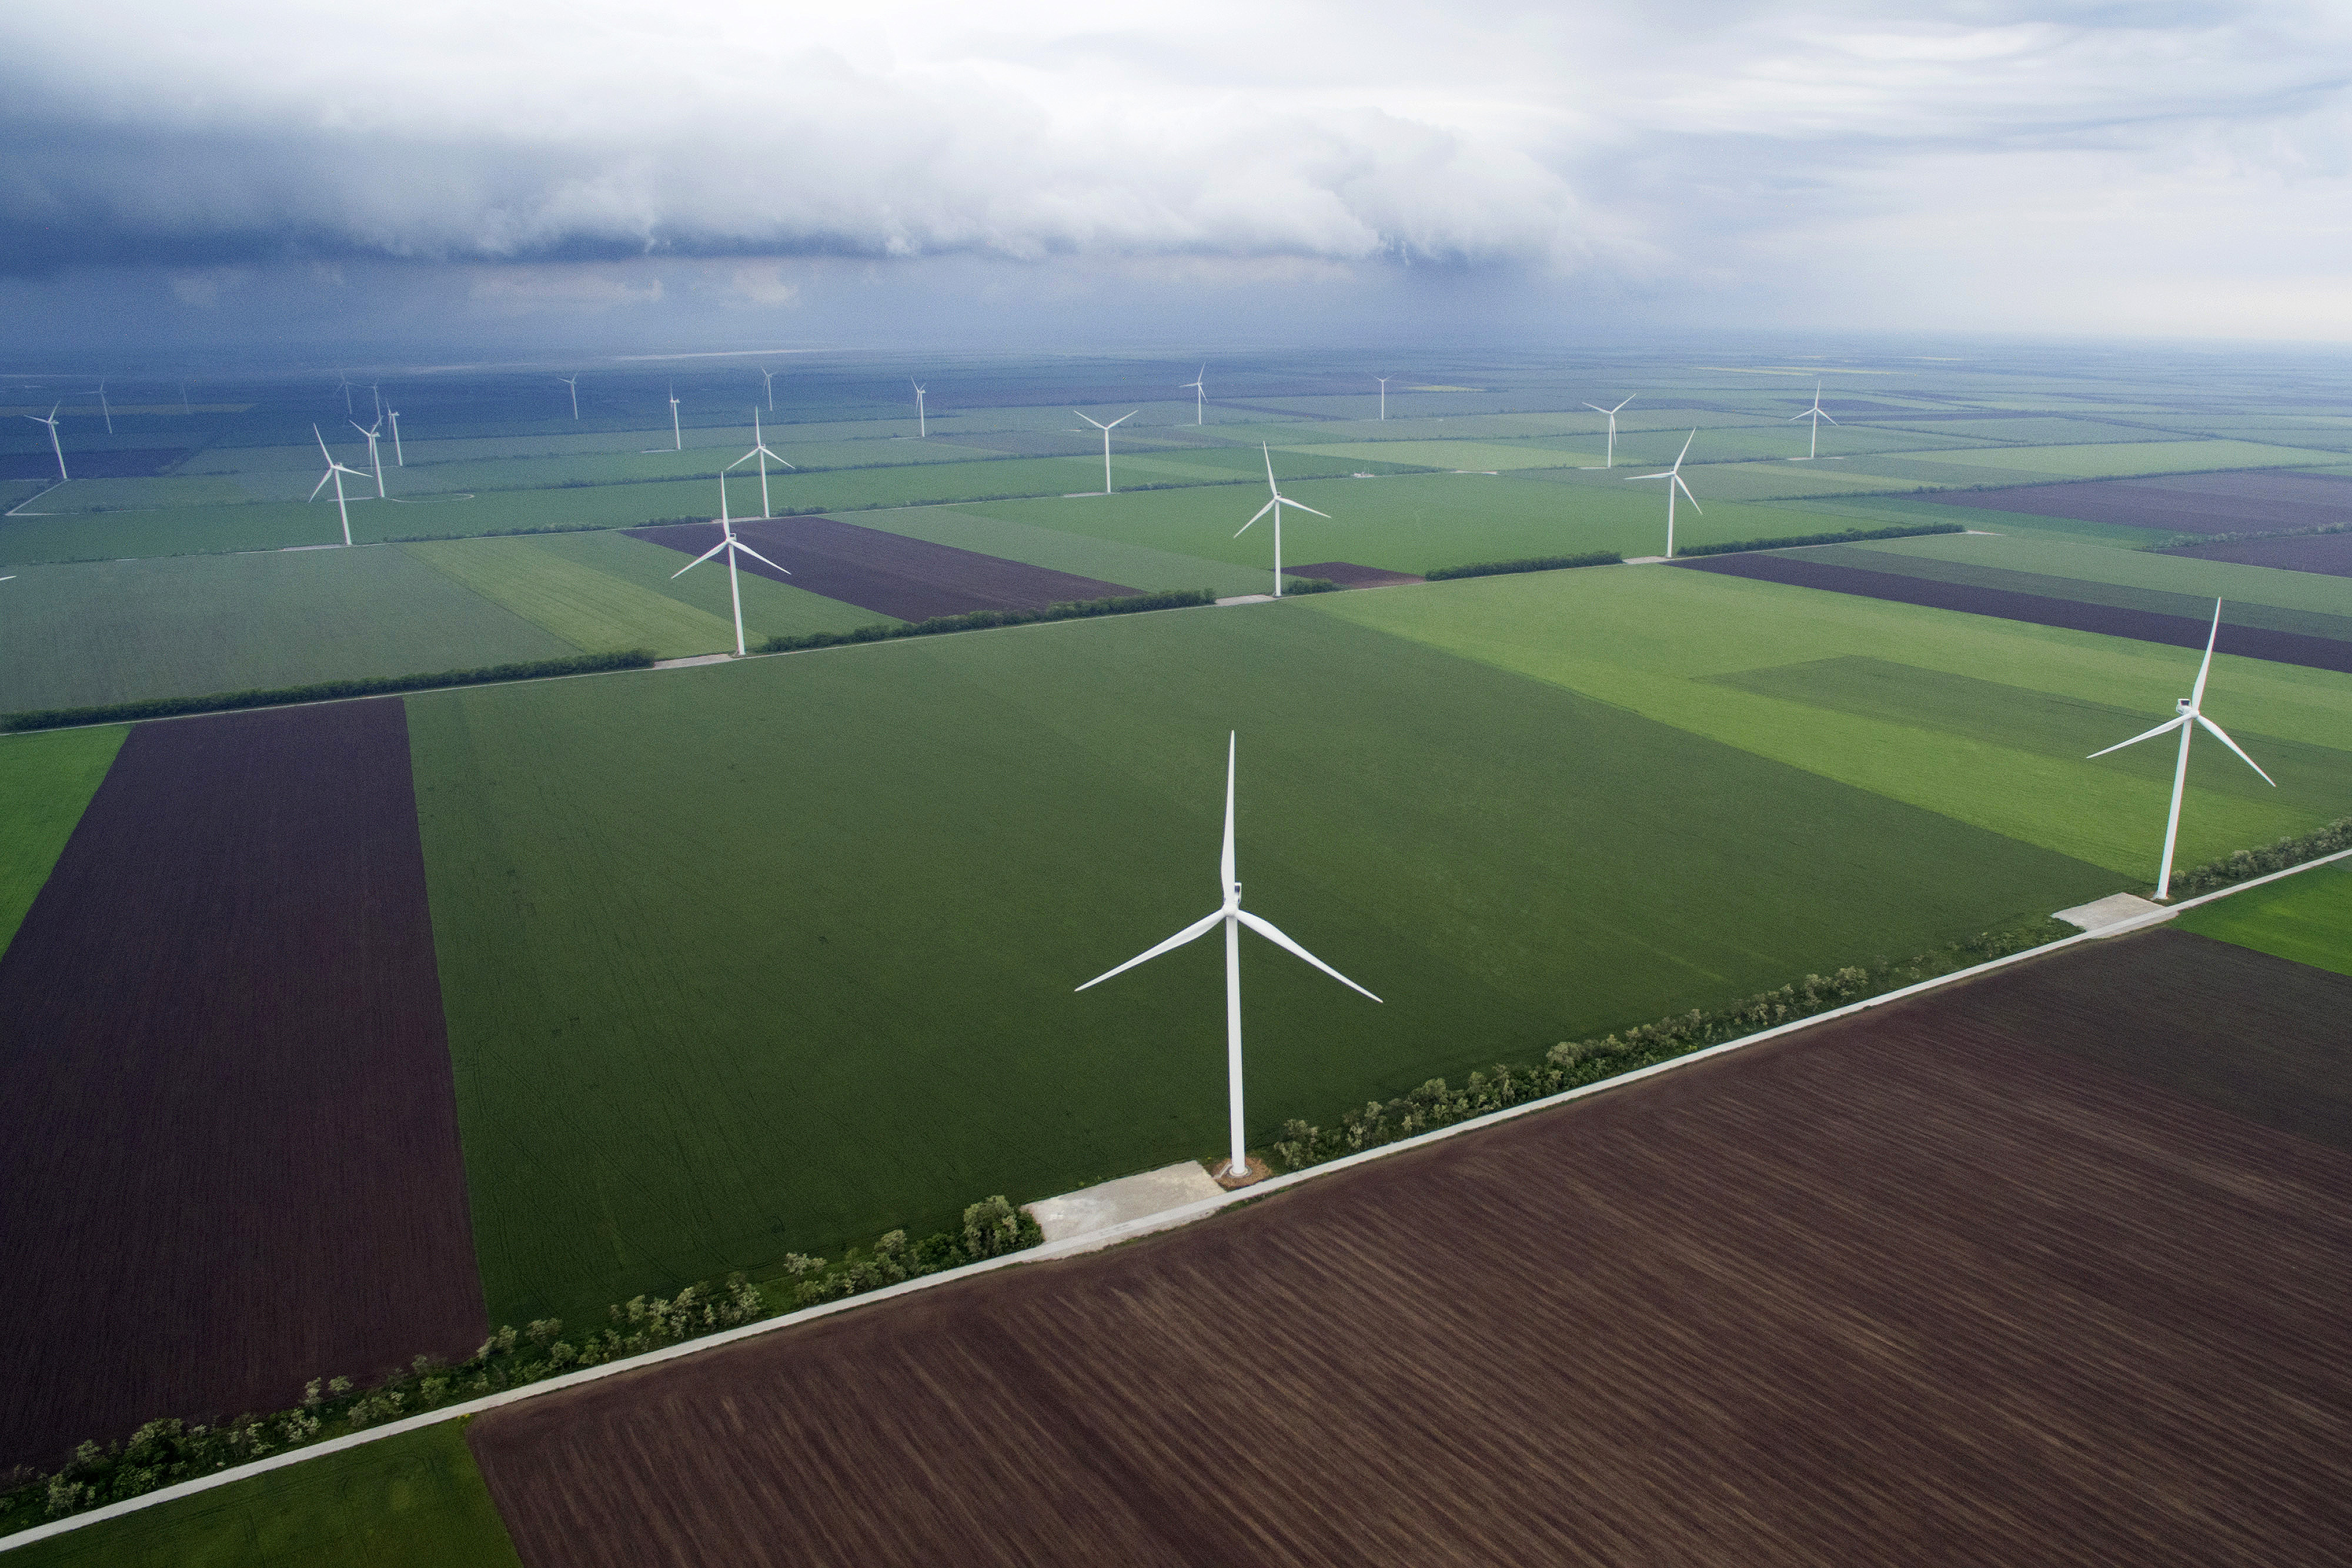 Wind turbine manufacturers are dipping toes into energy storage